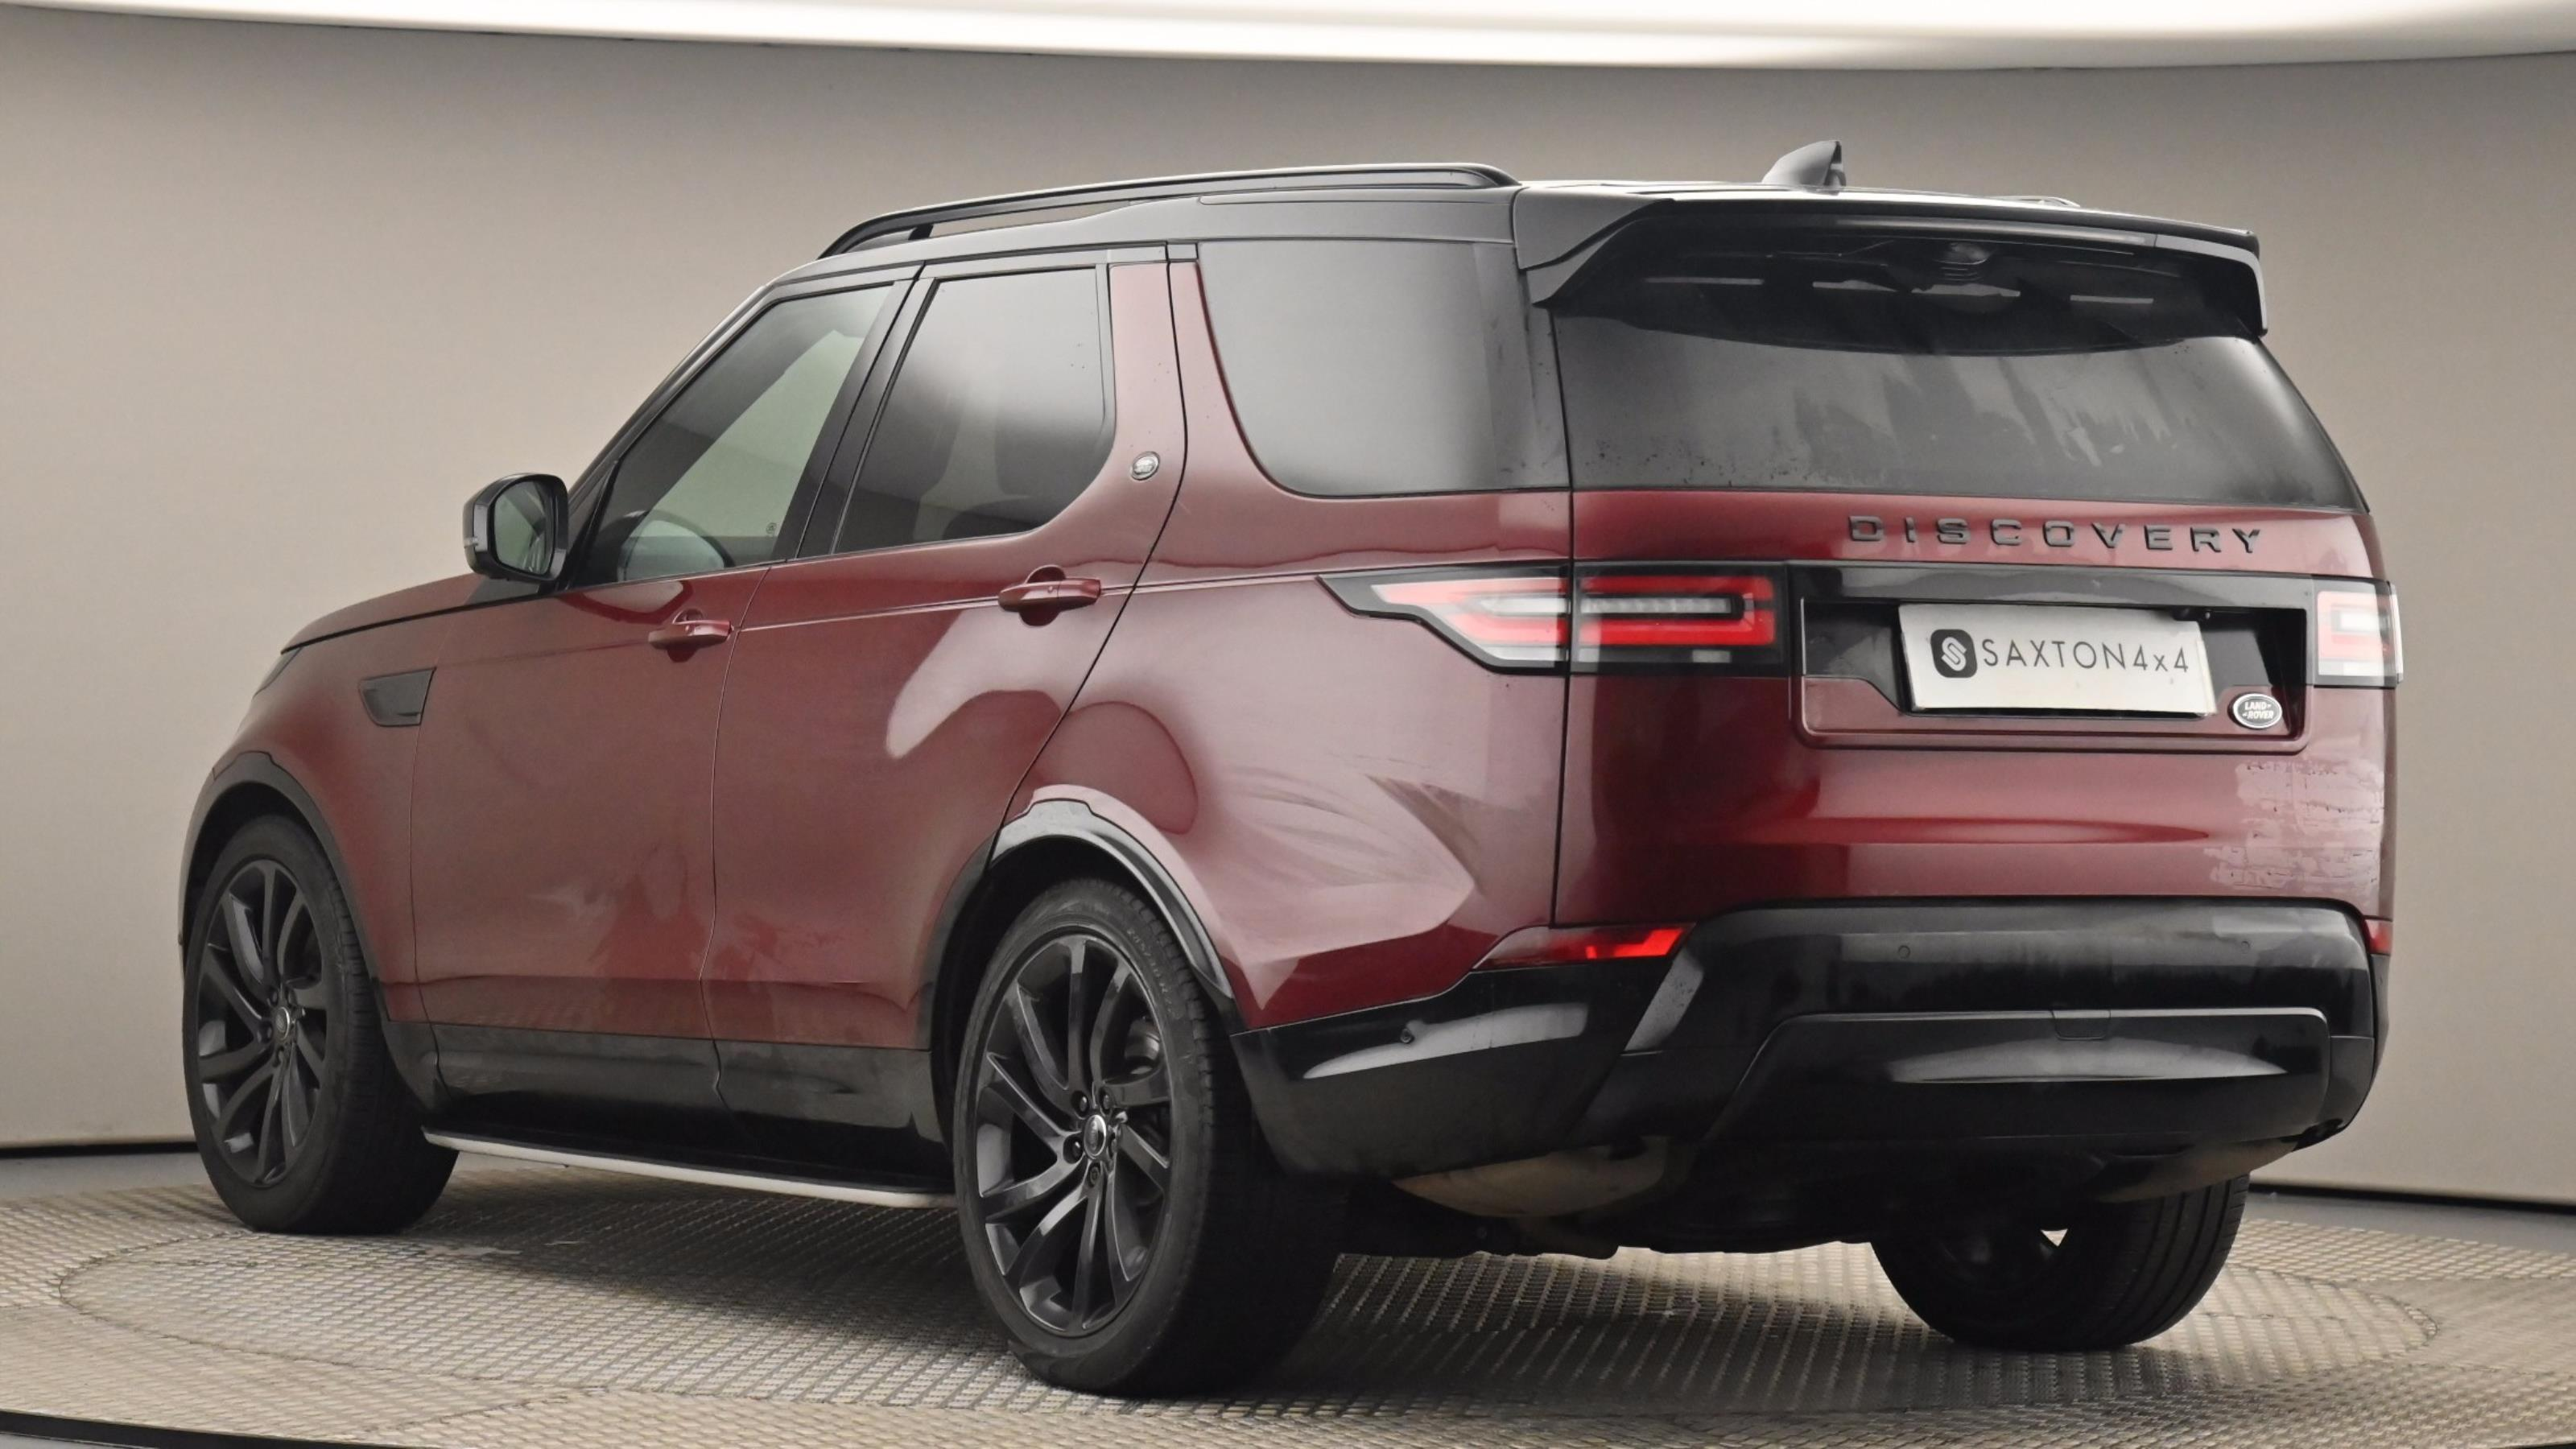 Used 2017 Land Rover DISCOVERY 3.0 Supercharged Si6 HSE Luxury 5dr Auto RED at Saxton4x4